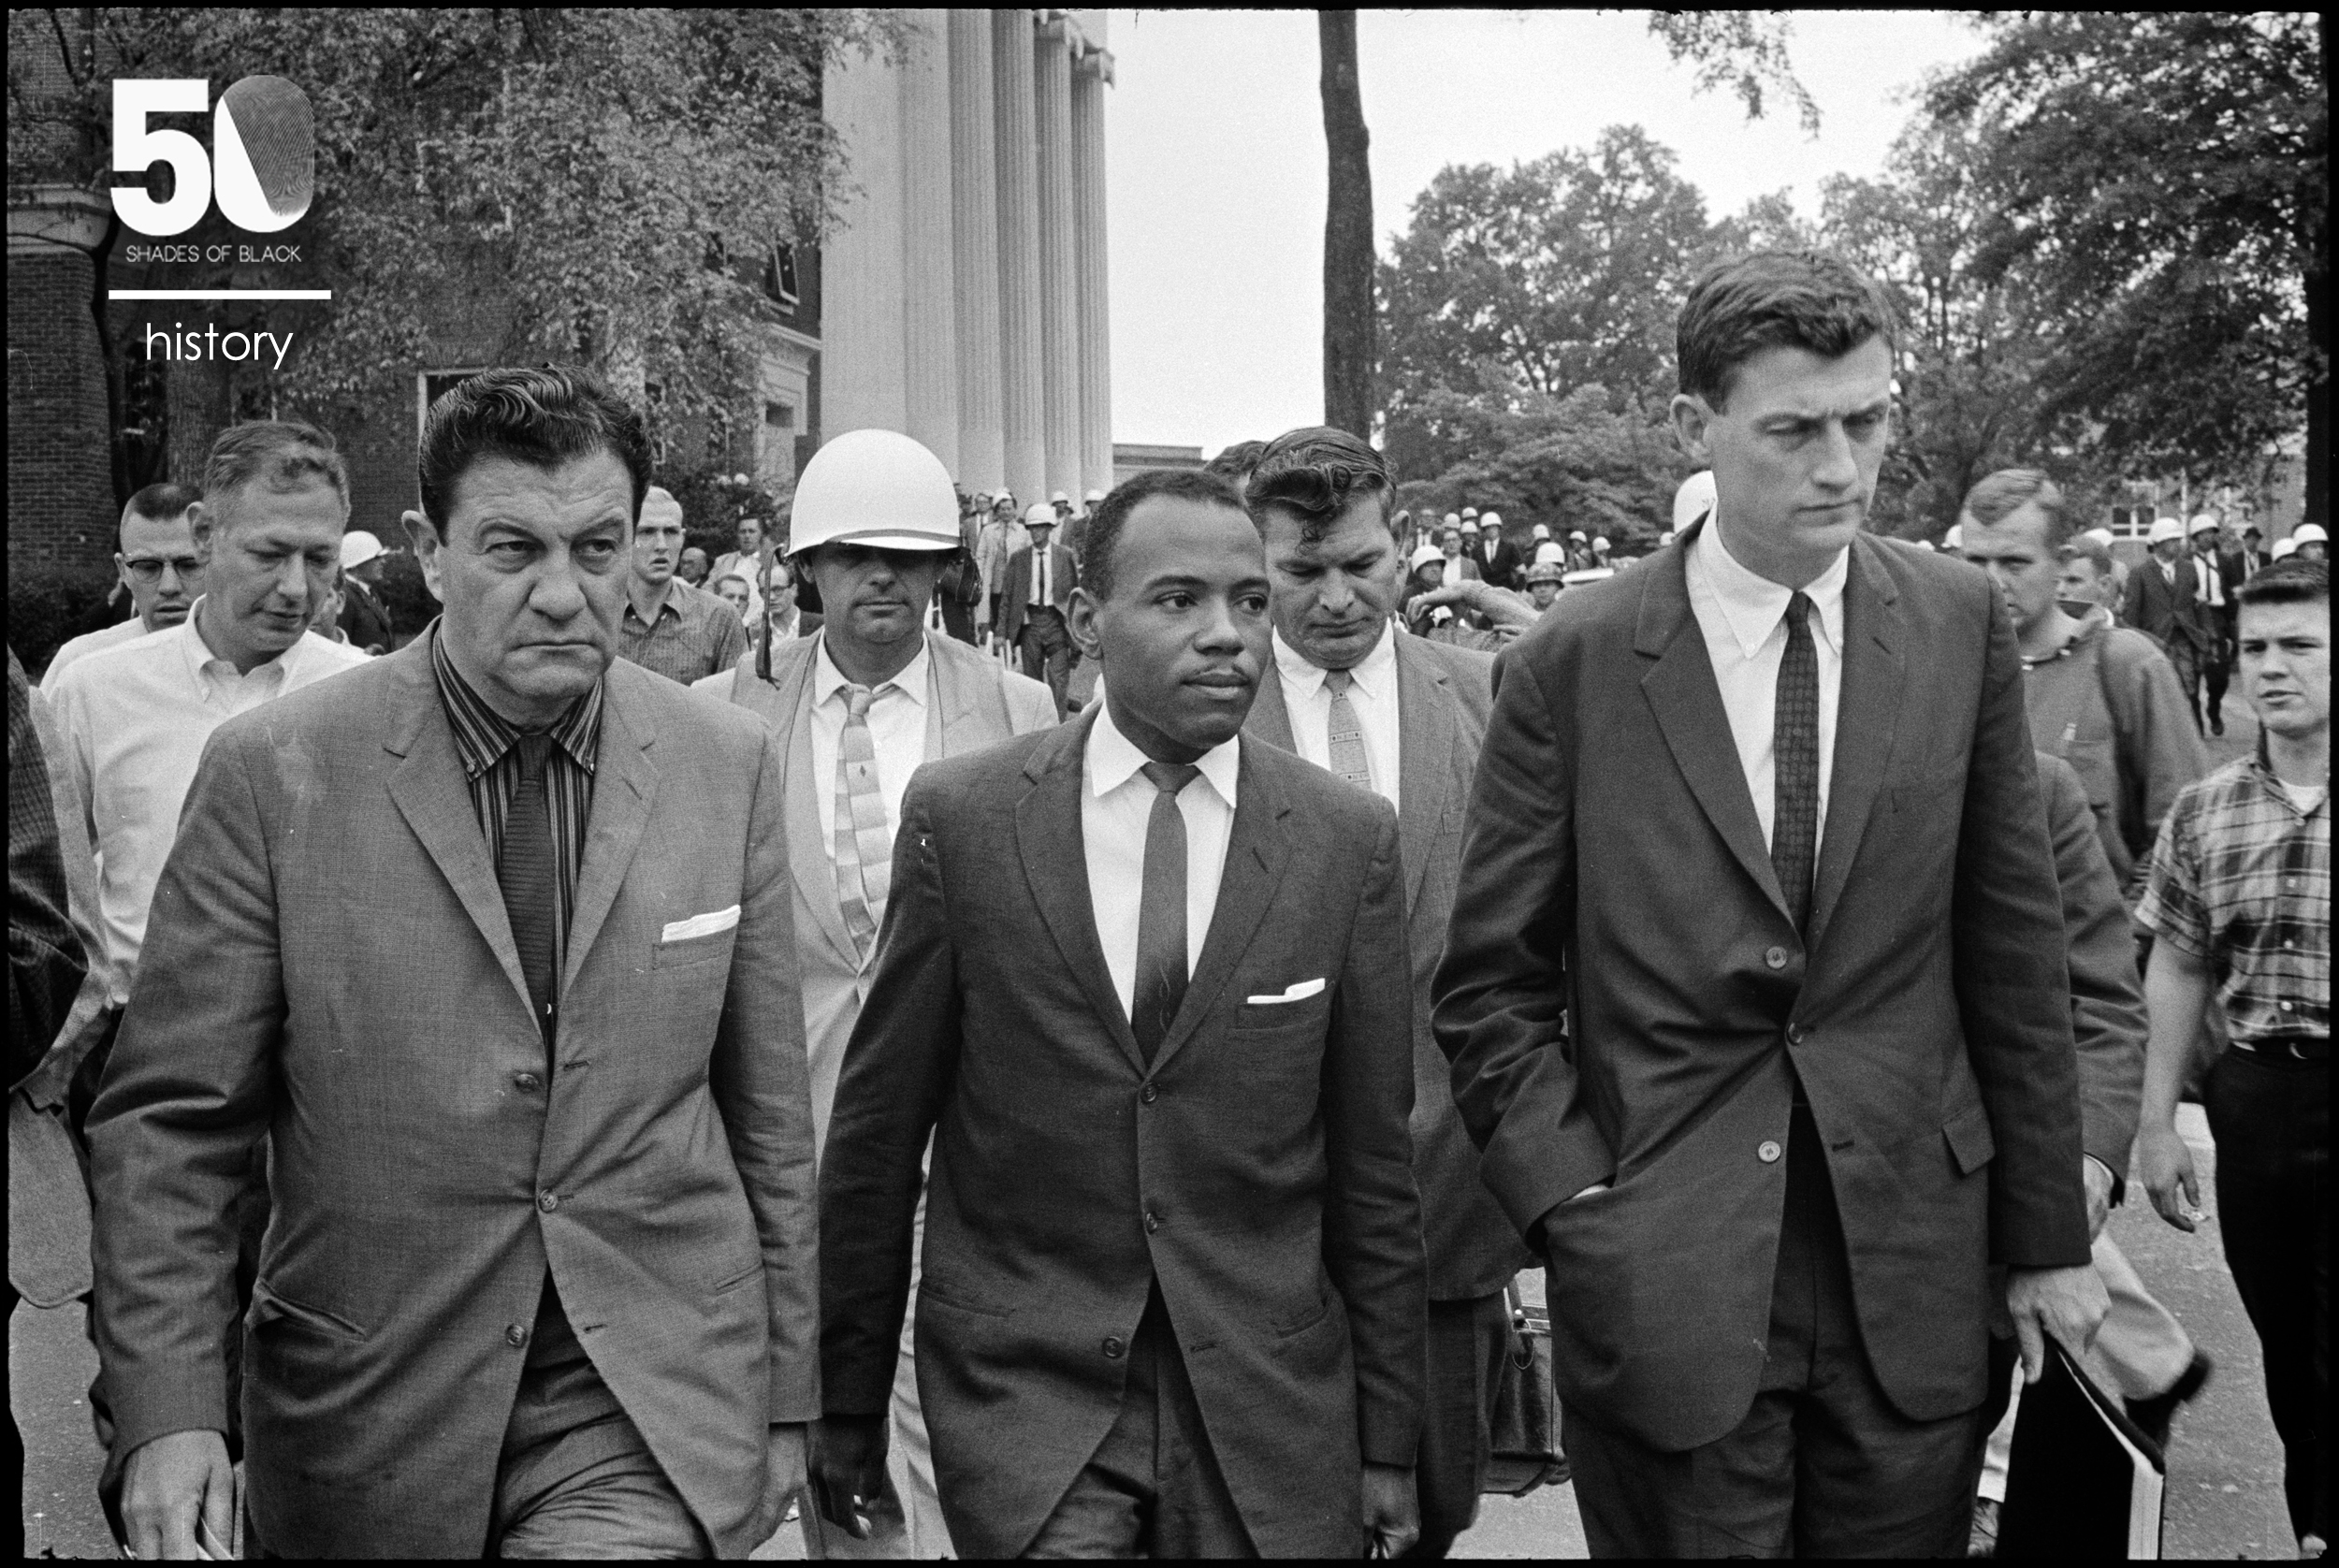 Integration at Ole Miss: James Meredith walking to class accompanied by U.S. marshals.The men flanking Meredith are U.S. Marshal James McShane (left) andJohn Doarof the Justice Department (right) October 1, 1962 Photographer:  Marion S. Trikosko for U.S. News & World Report Source: Library of Congress